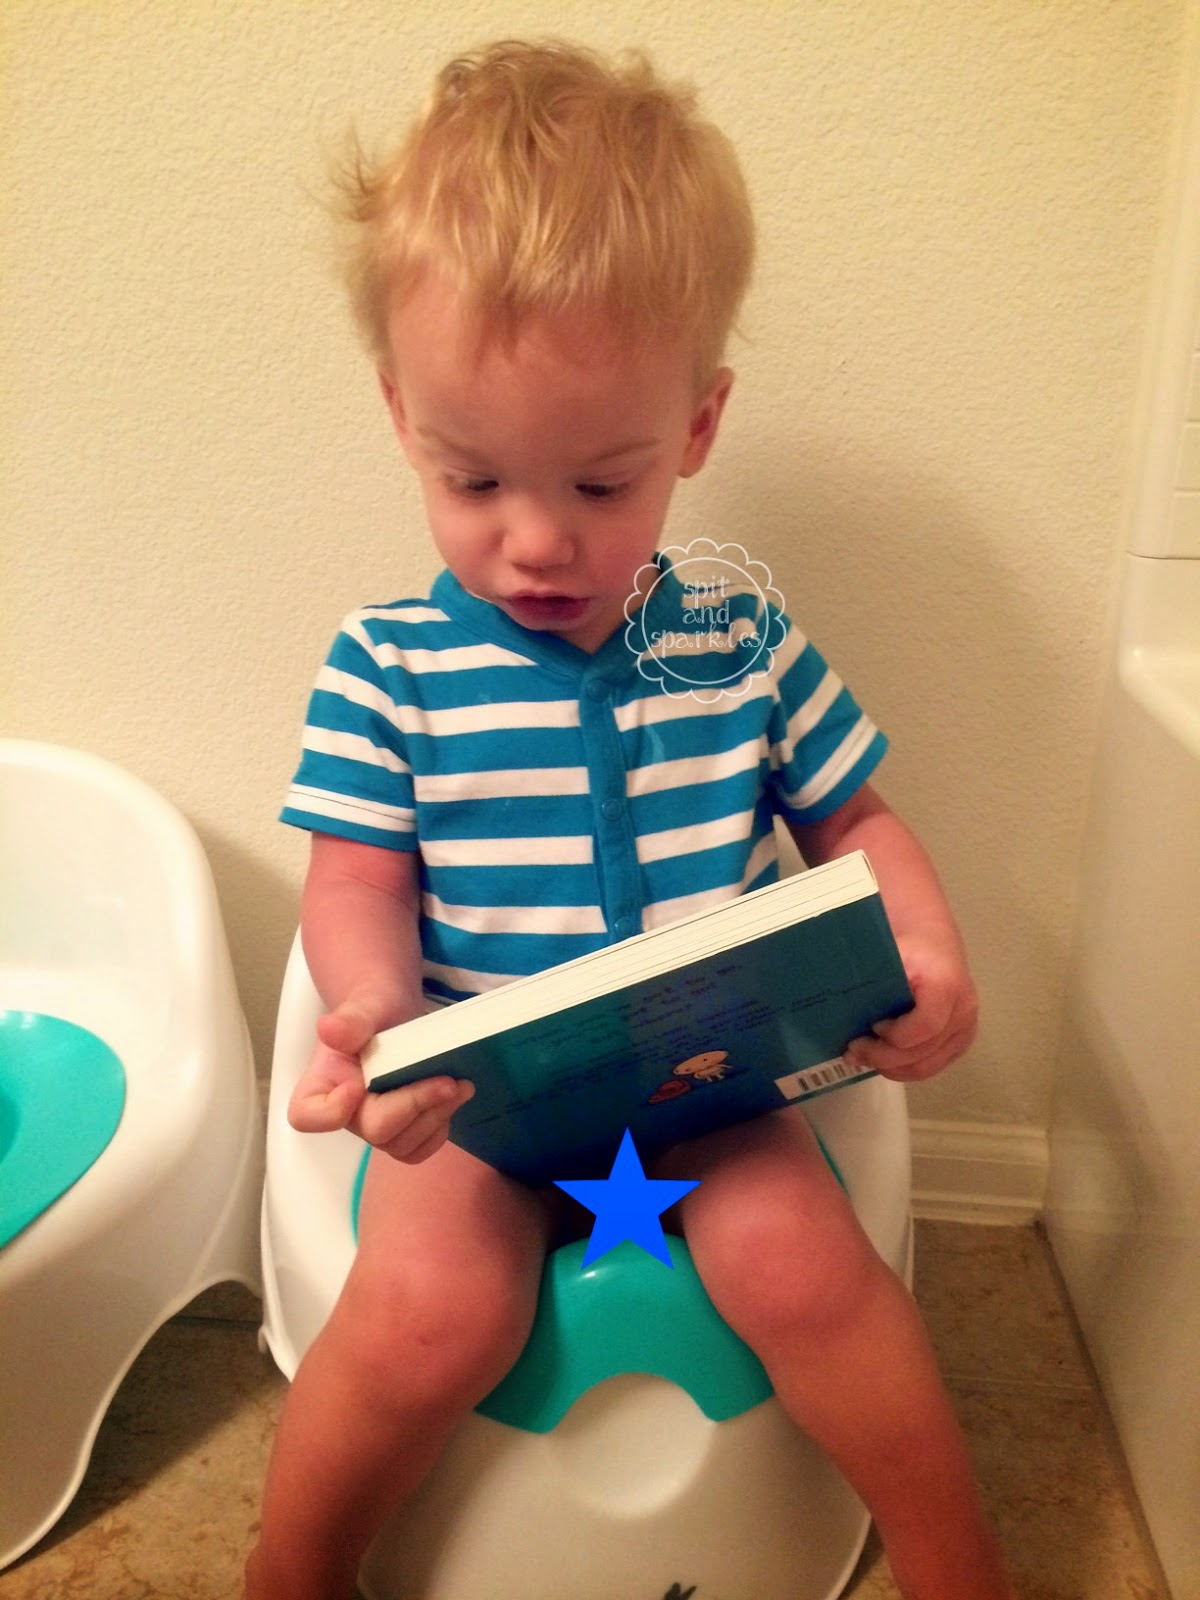 Tips on early potty teaching from a mom of boy/girl twins! #pottytime #twins #pottytraining